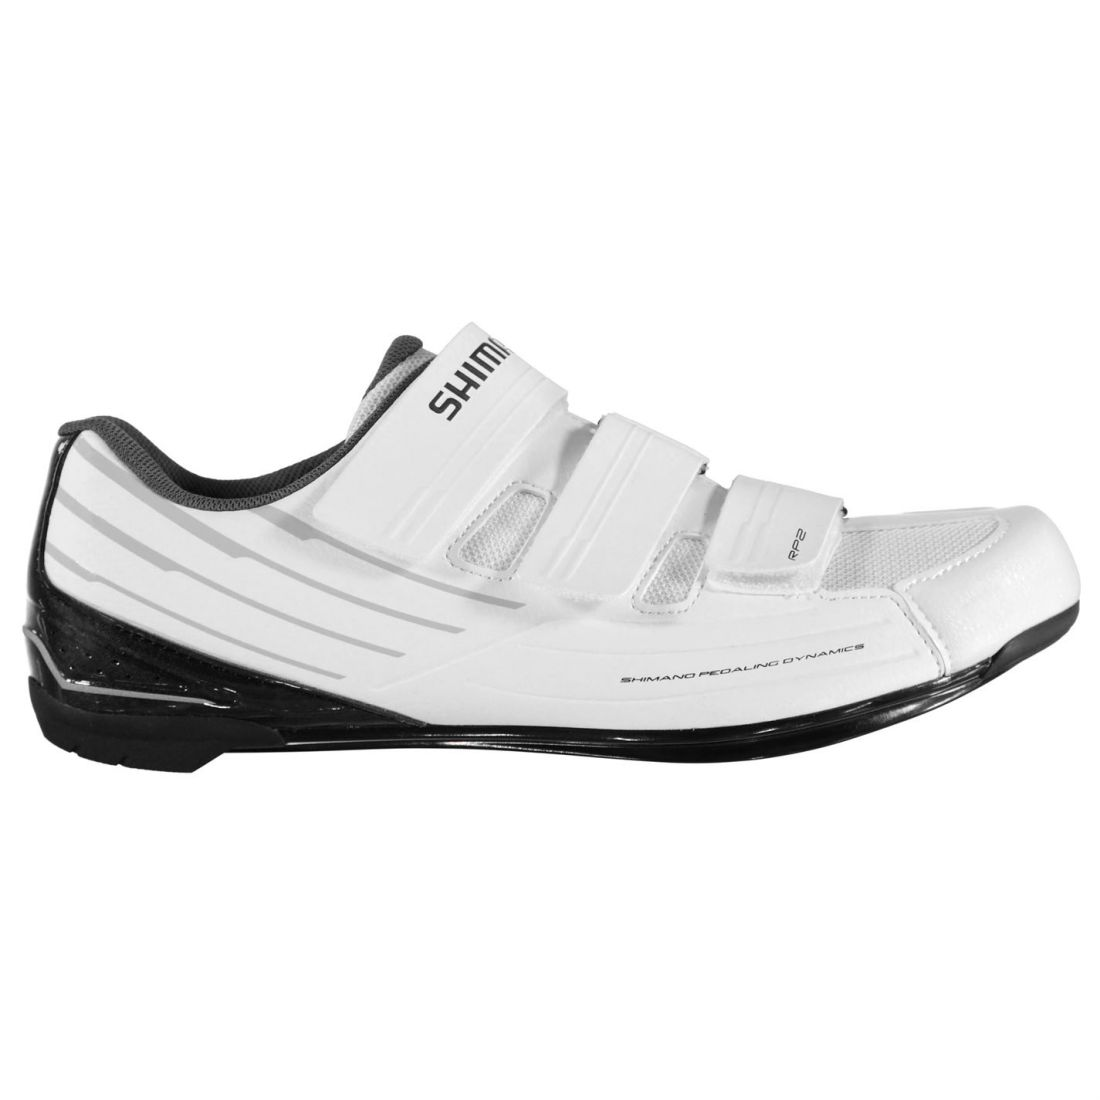 Shimano RP2 SPD SL Cycling shoes Mens Gents - Road  Padded Ankle Collar Strap  up to 60% off